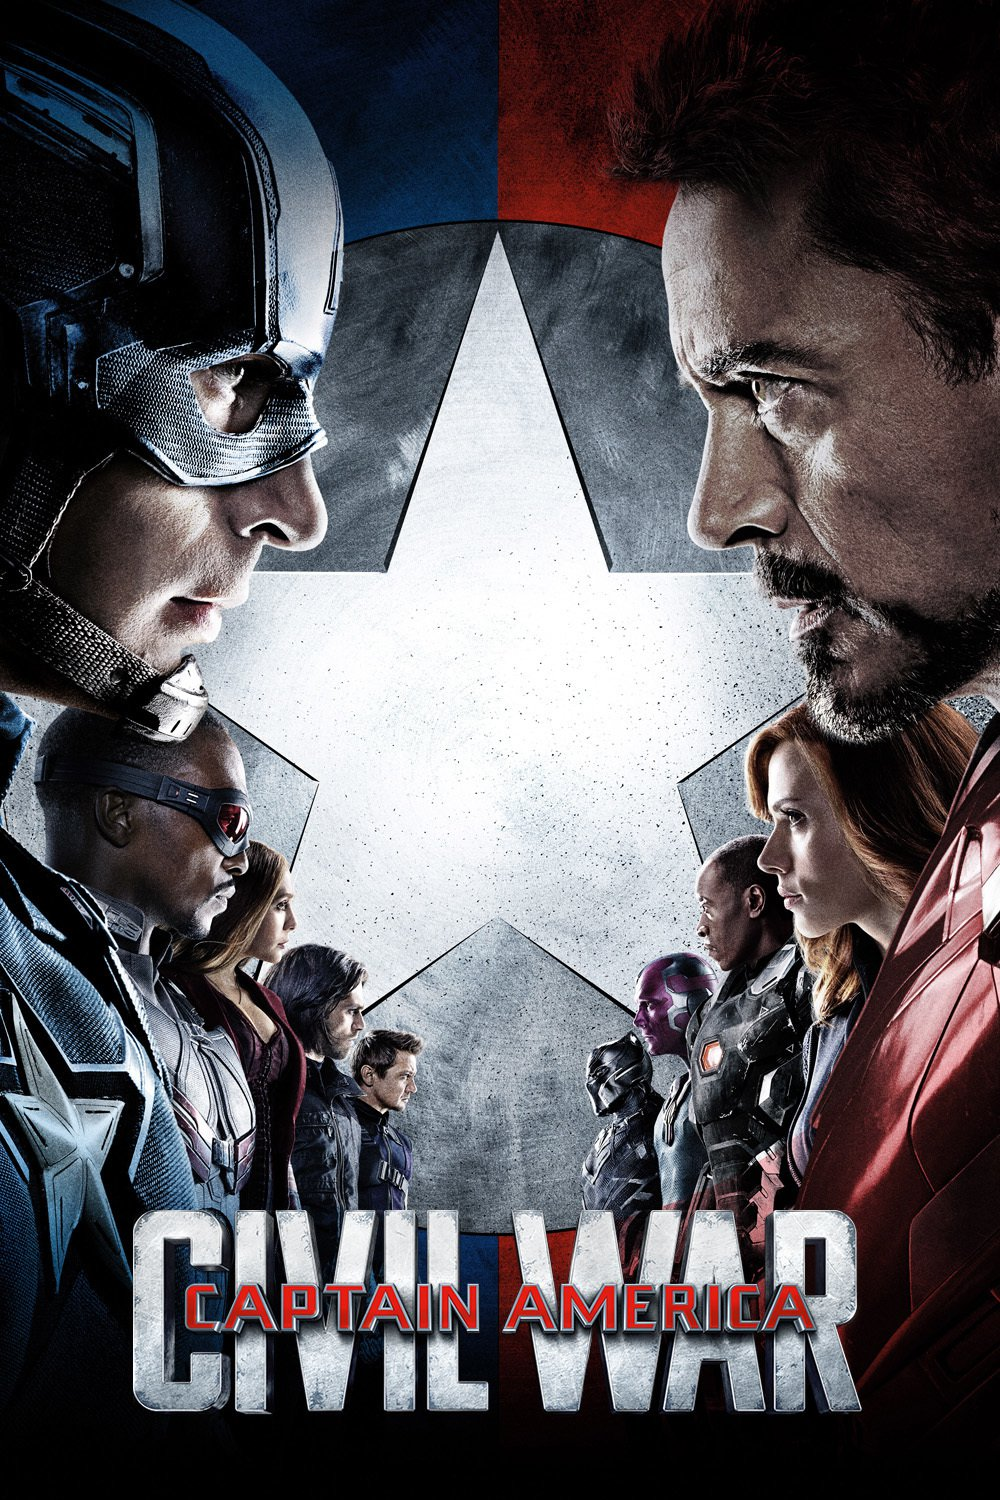 CAPTAIN AMERICA 3: CIVIL WAR TAMIL DUBBED HD